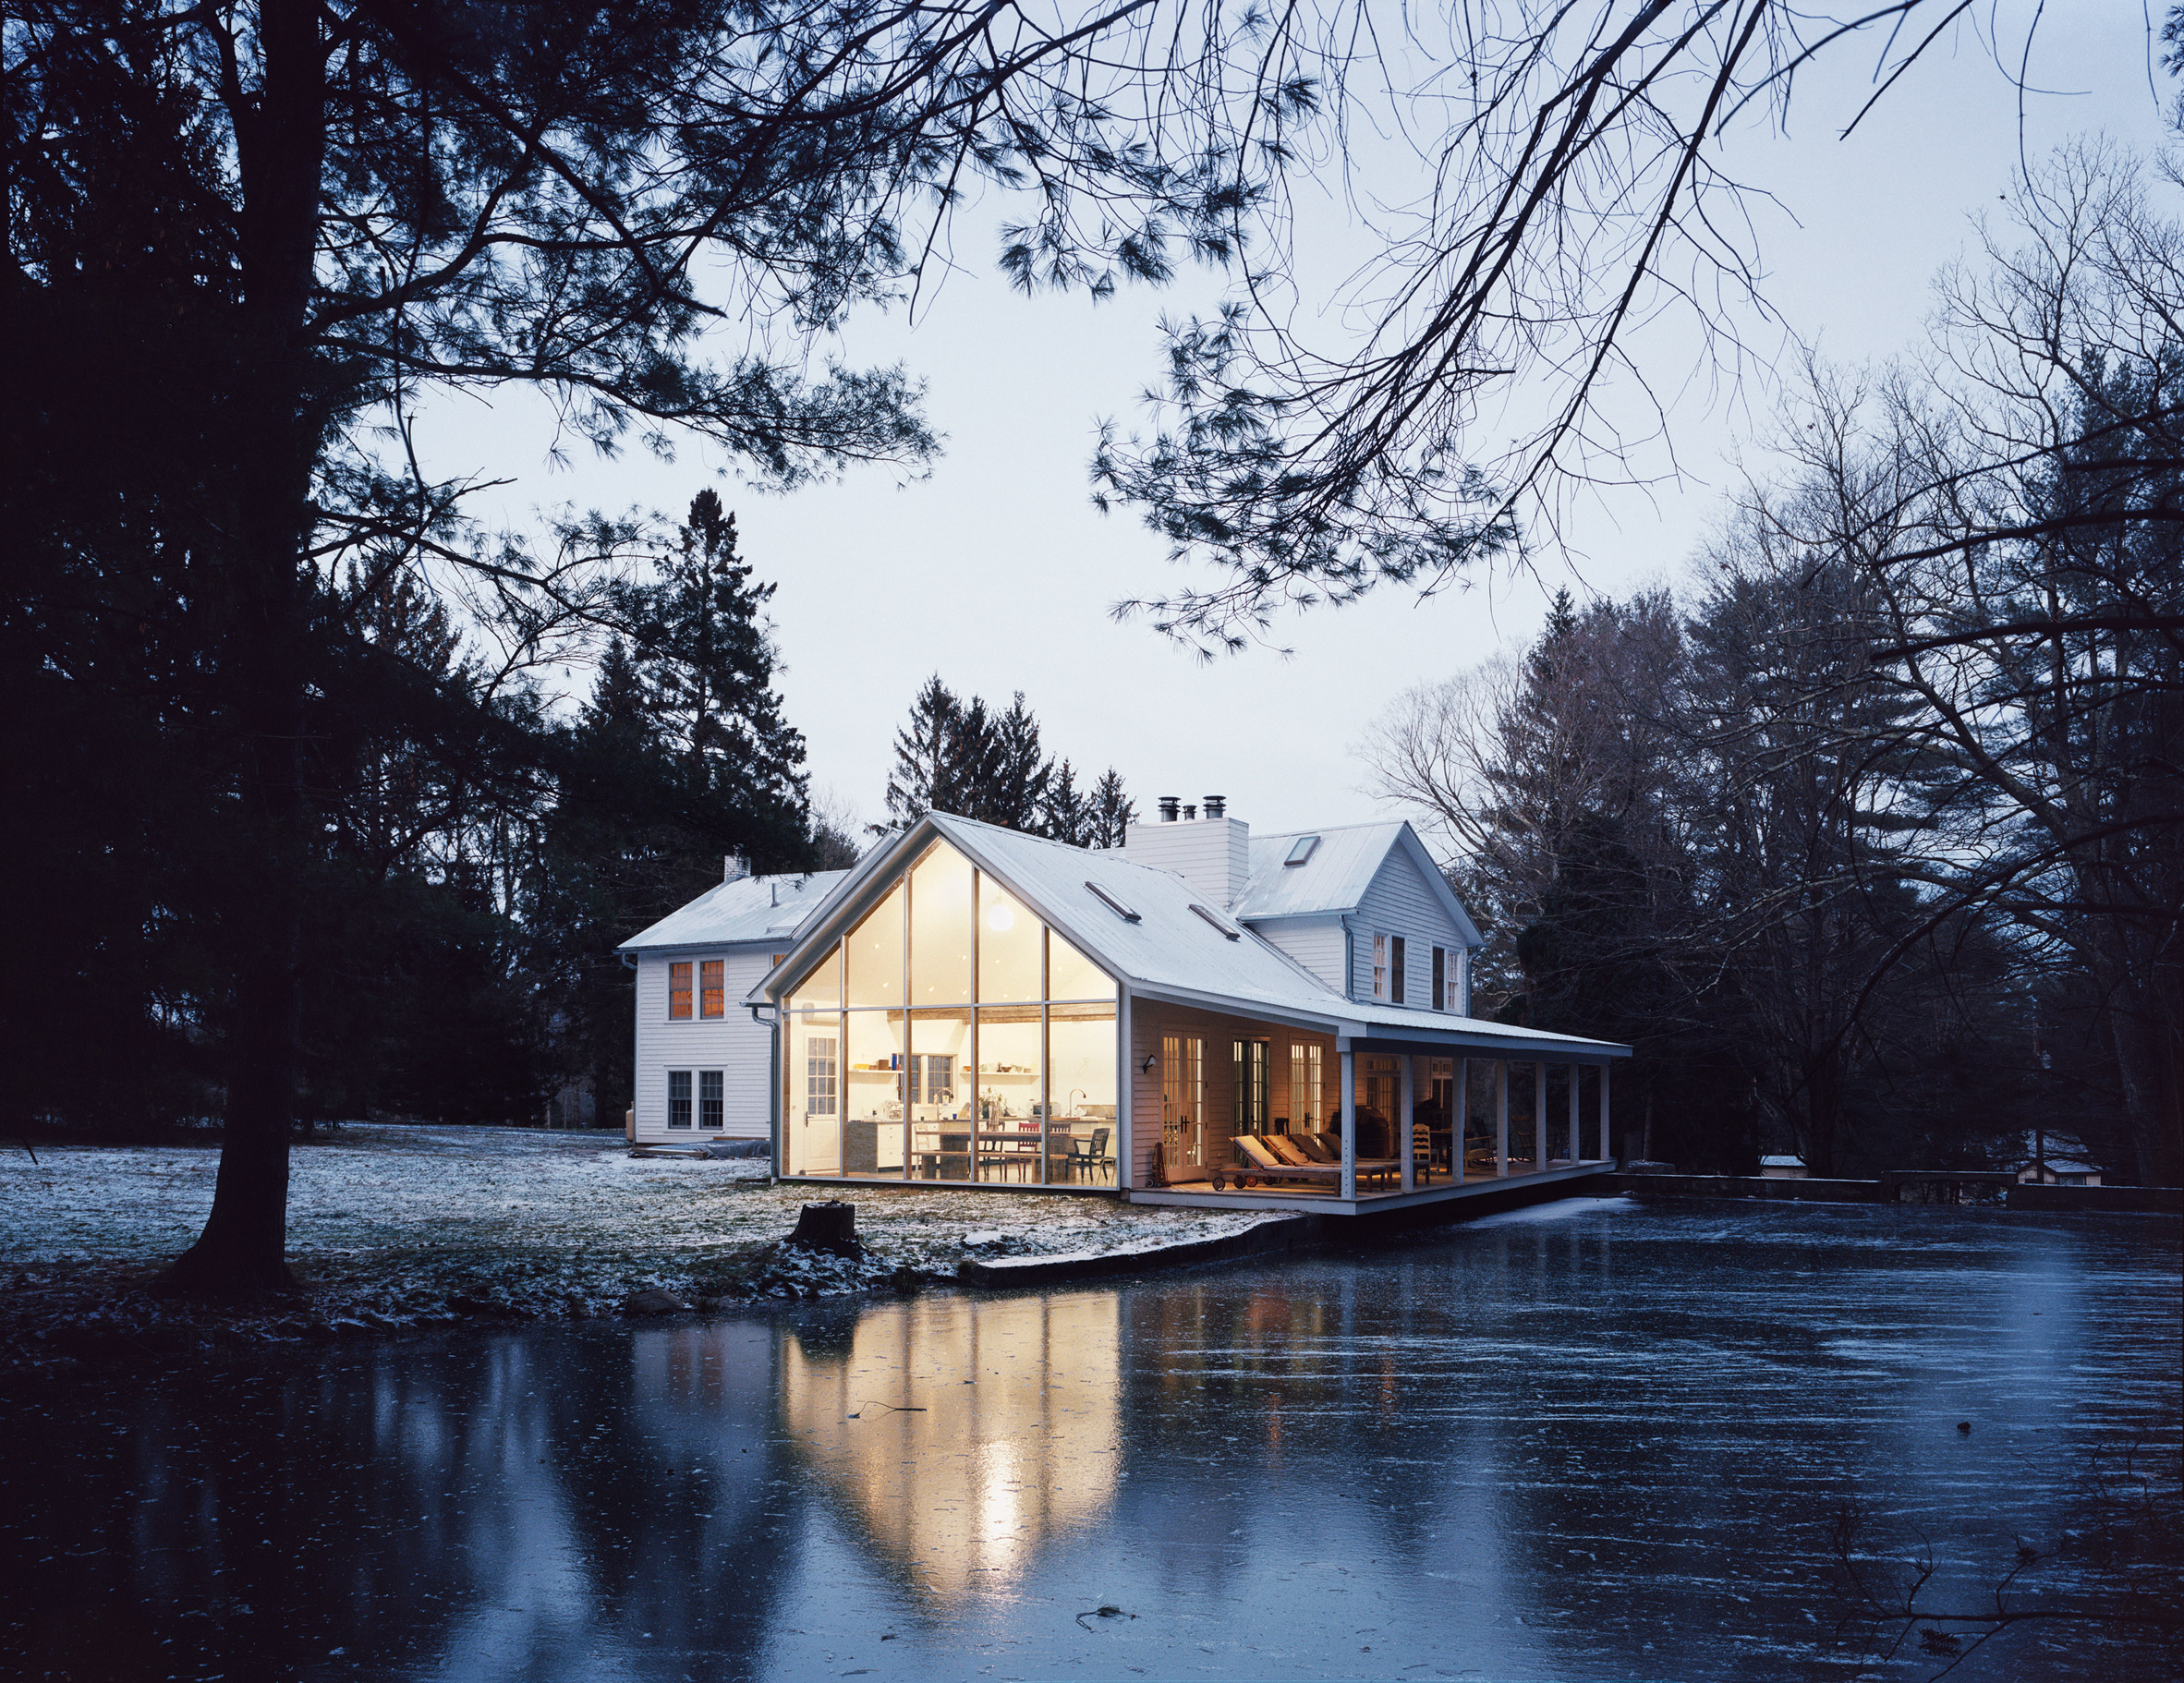 Floating Farmhouse by Tom Givone